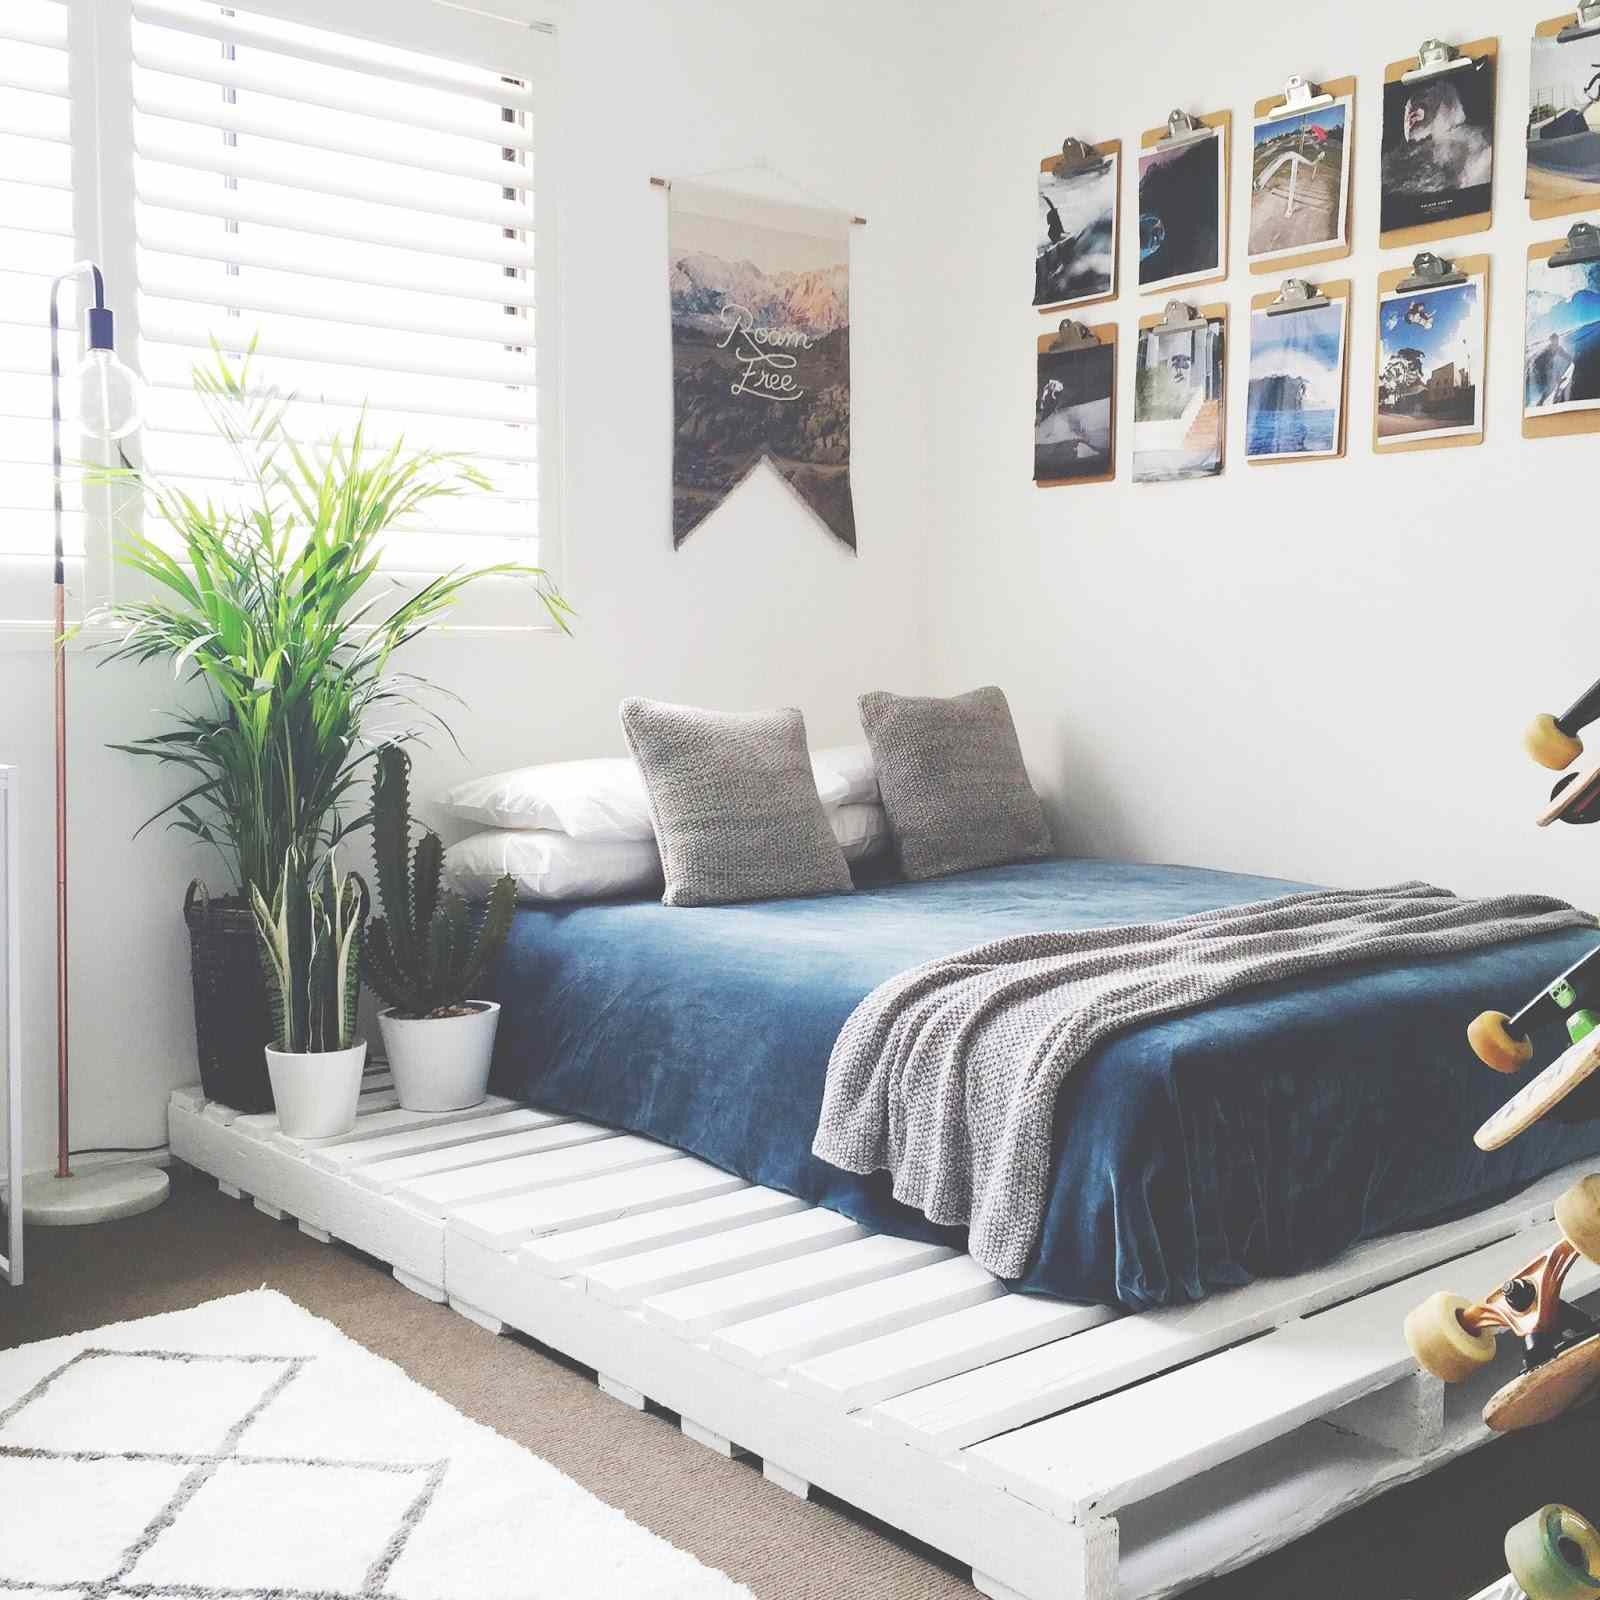 A bedroom with a pallet bed